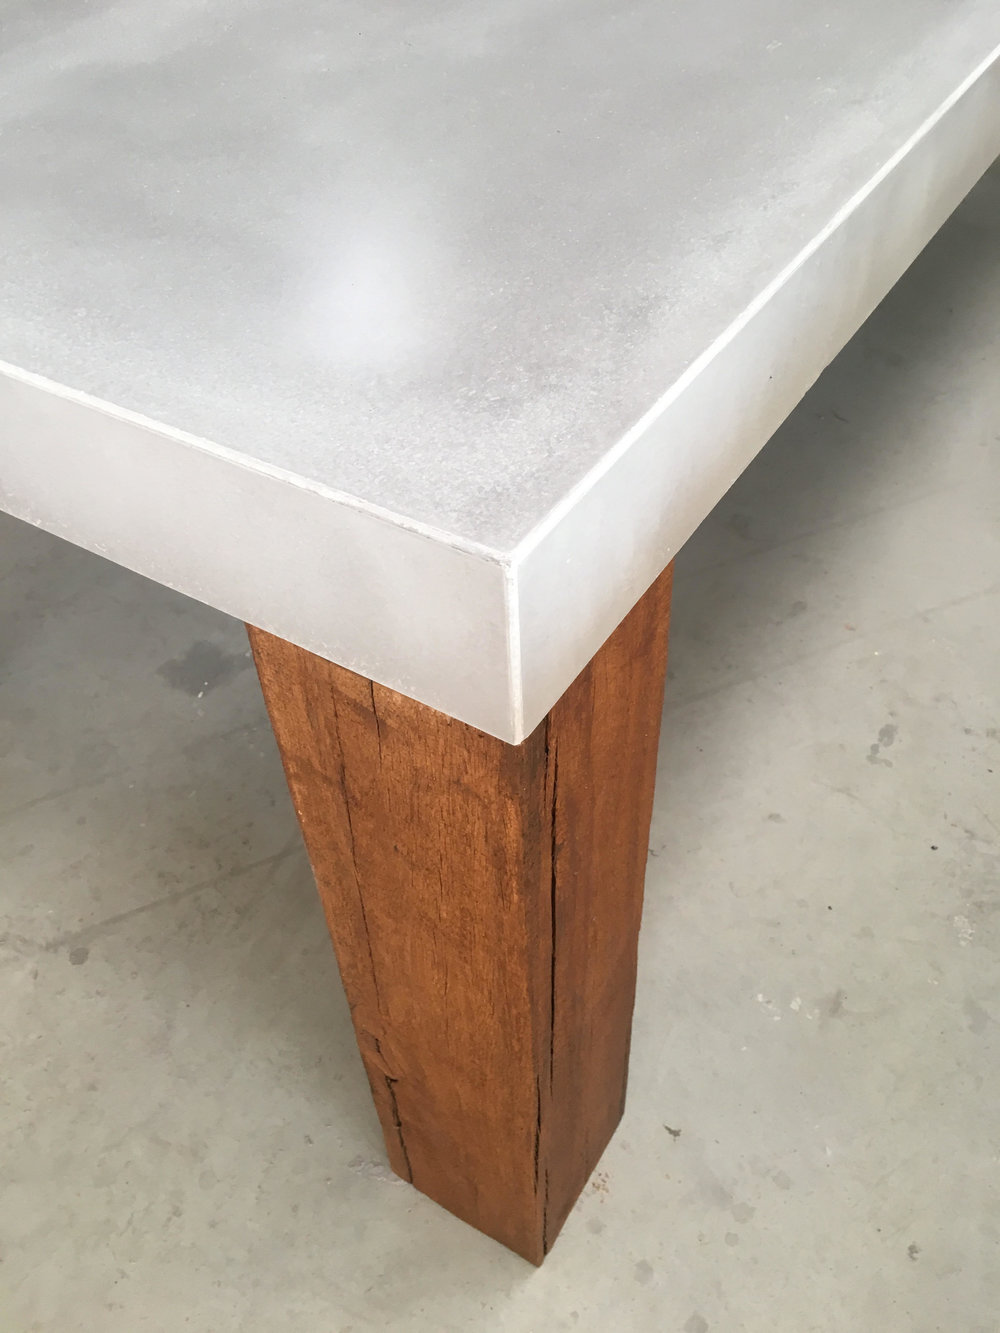 Concrete_Table_Closeup.jpg